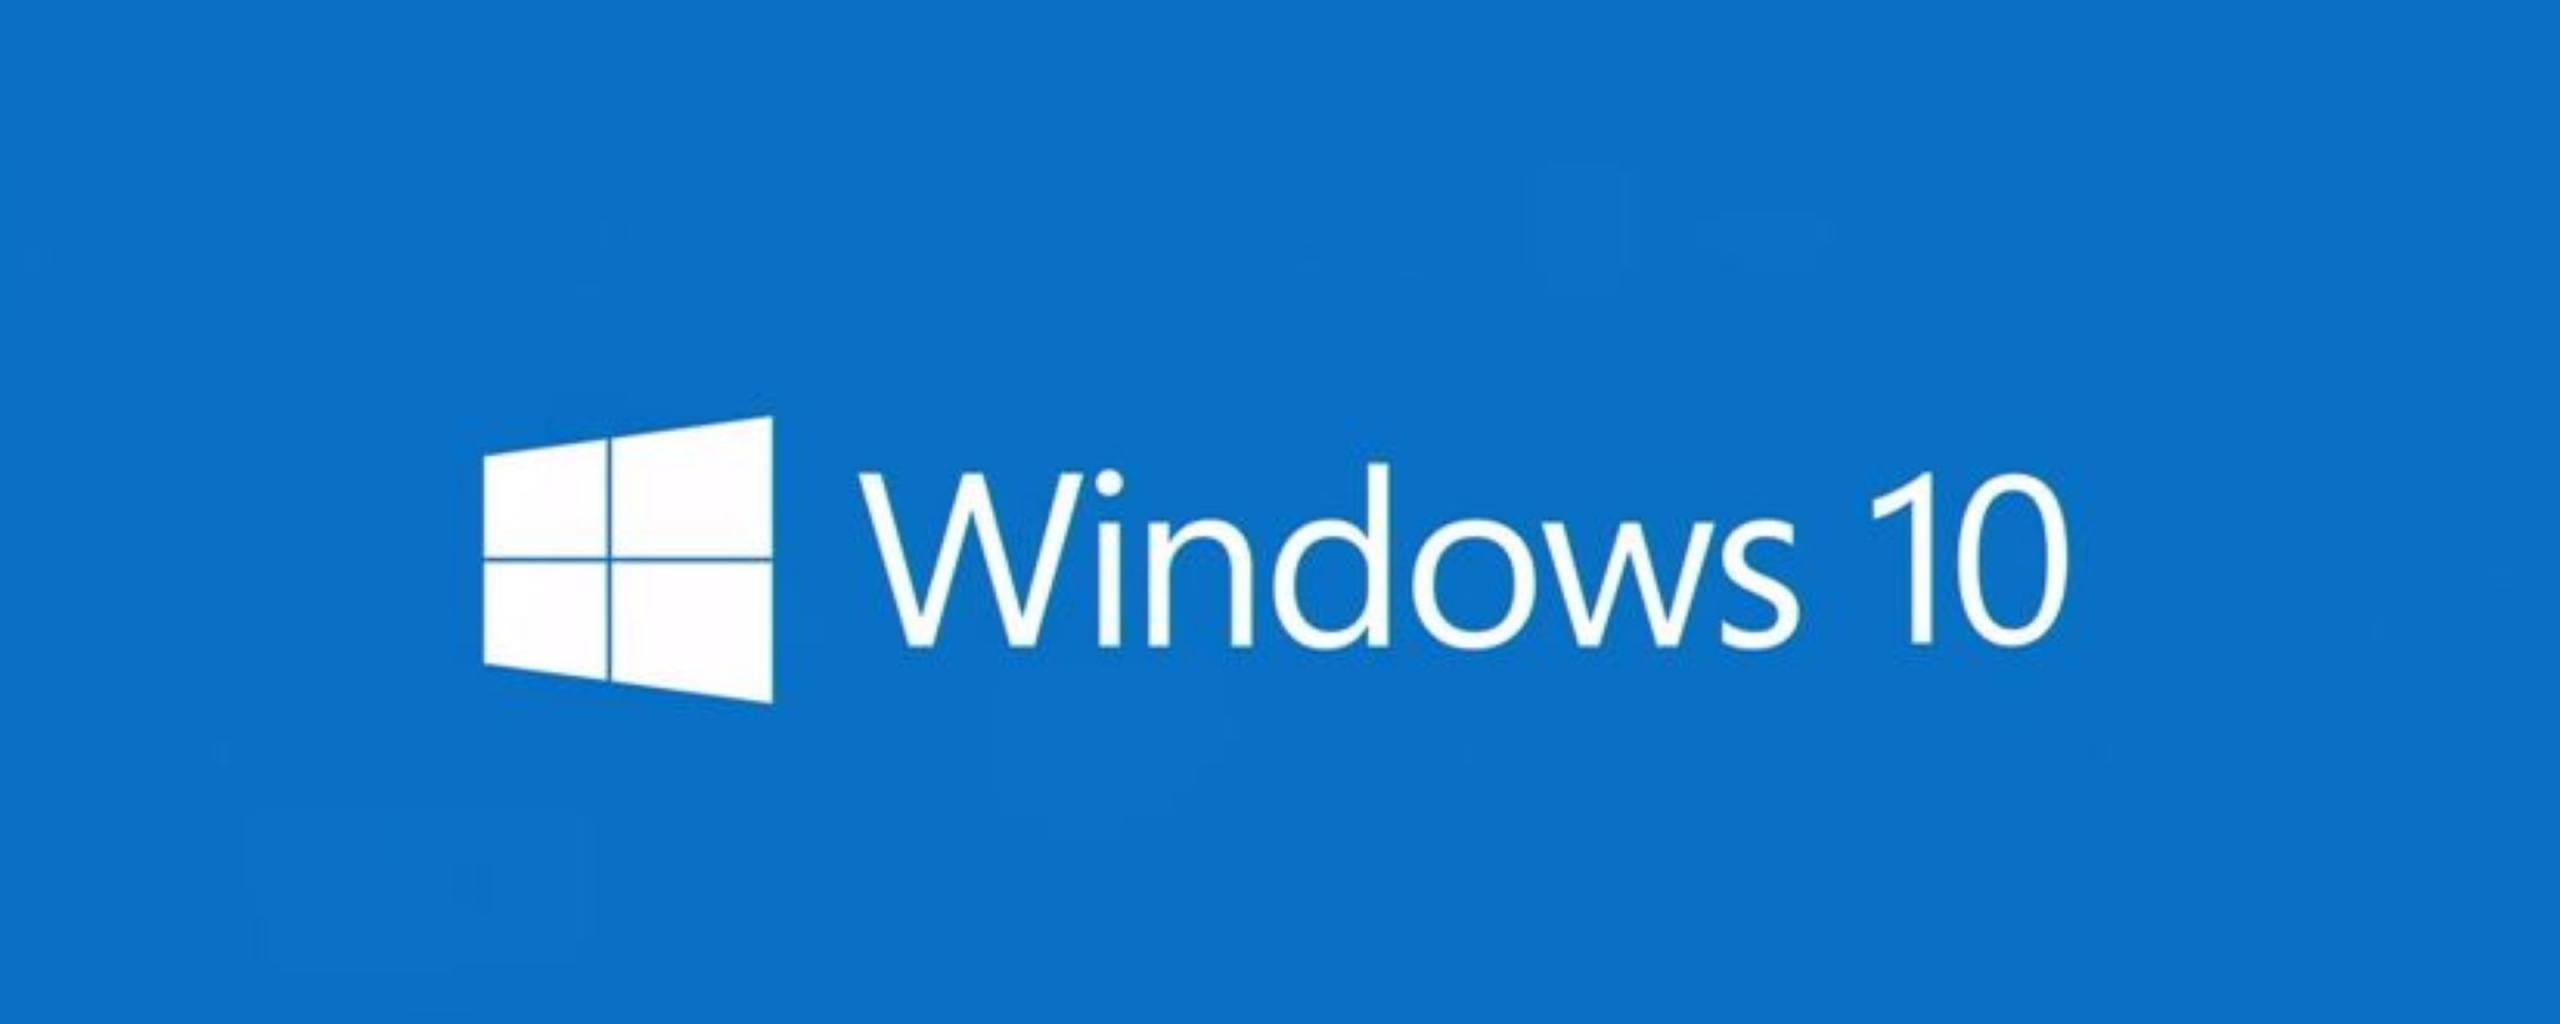 2560x1024 Wallpaper windows 10 technical preview windows 10 logo 2560x1024